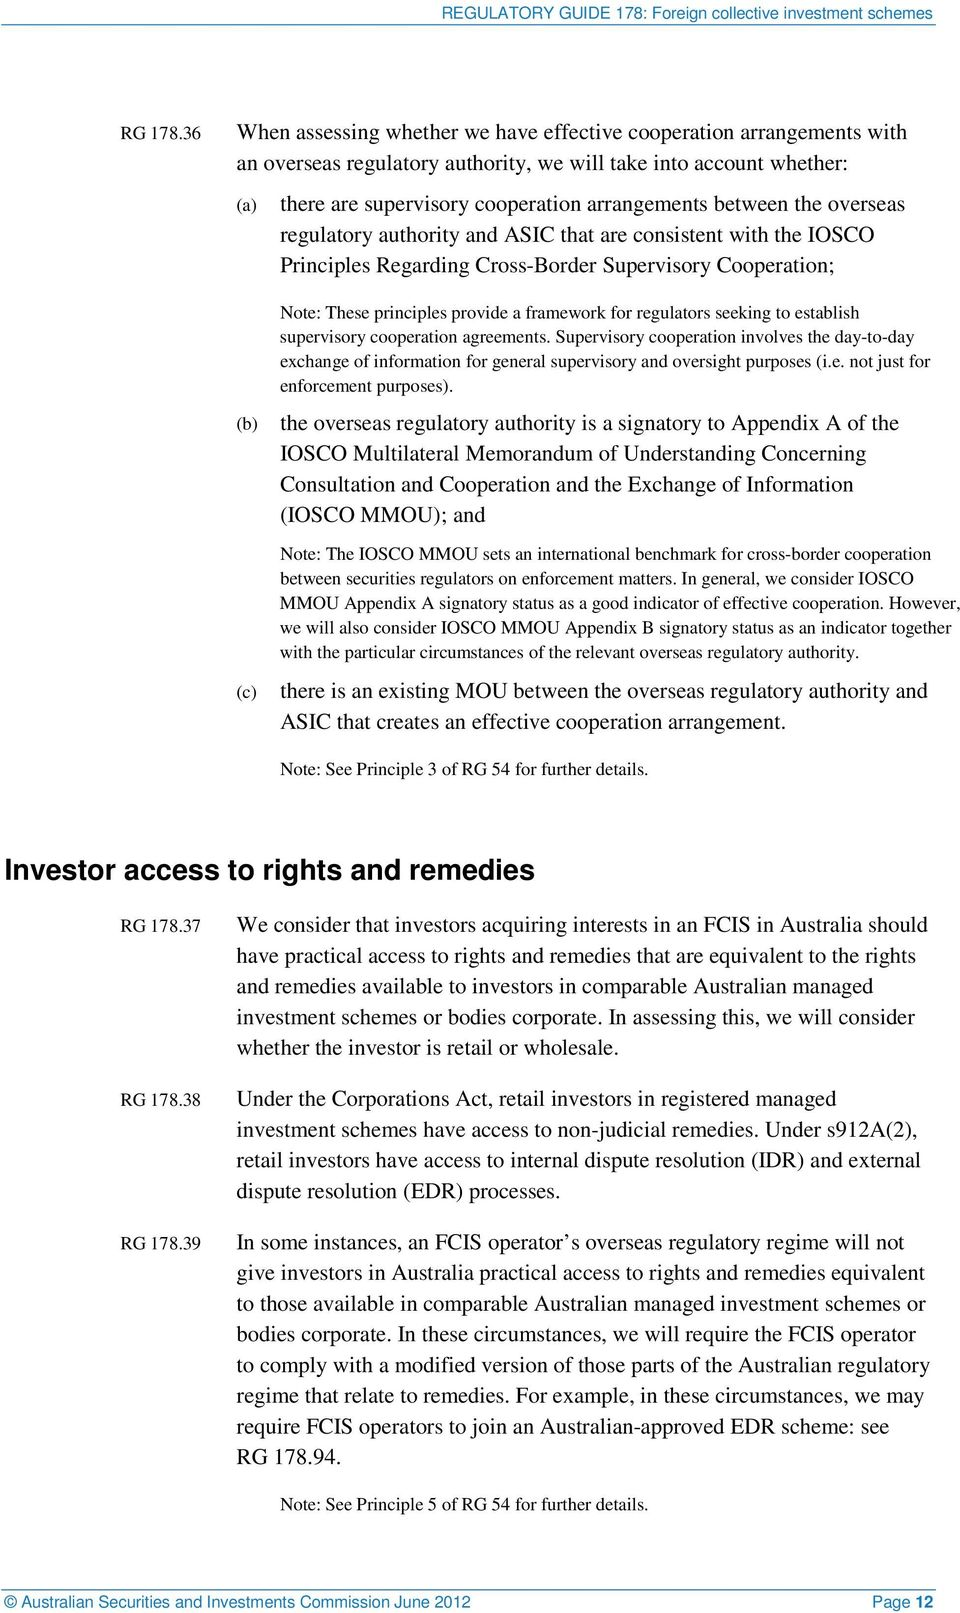 the overseas regulatory authority and ASIC that are consistent with the IOSCO Principles Regarding Cross-Border Supervisory Cooperation; Note: These principles provide a framework for regulators